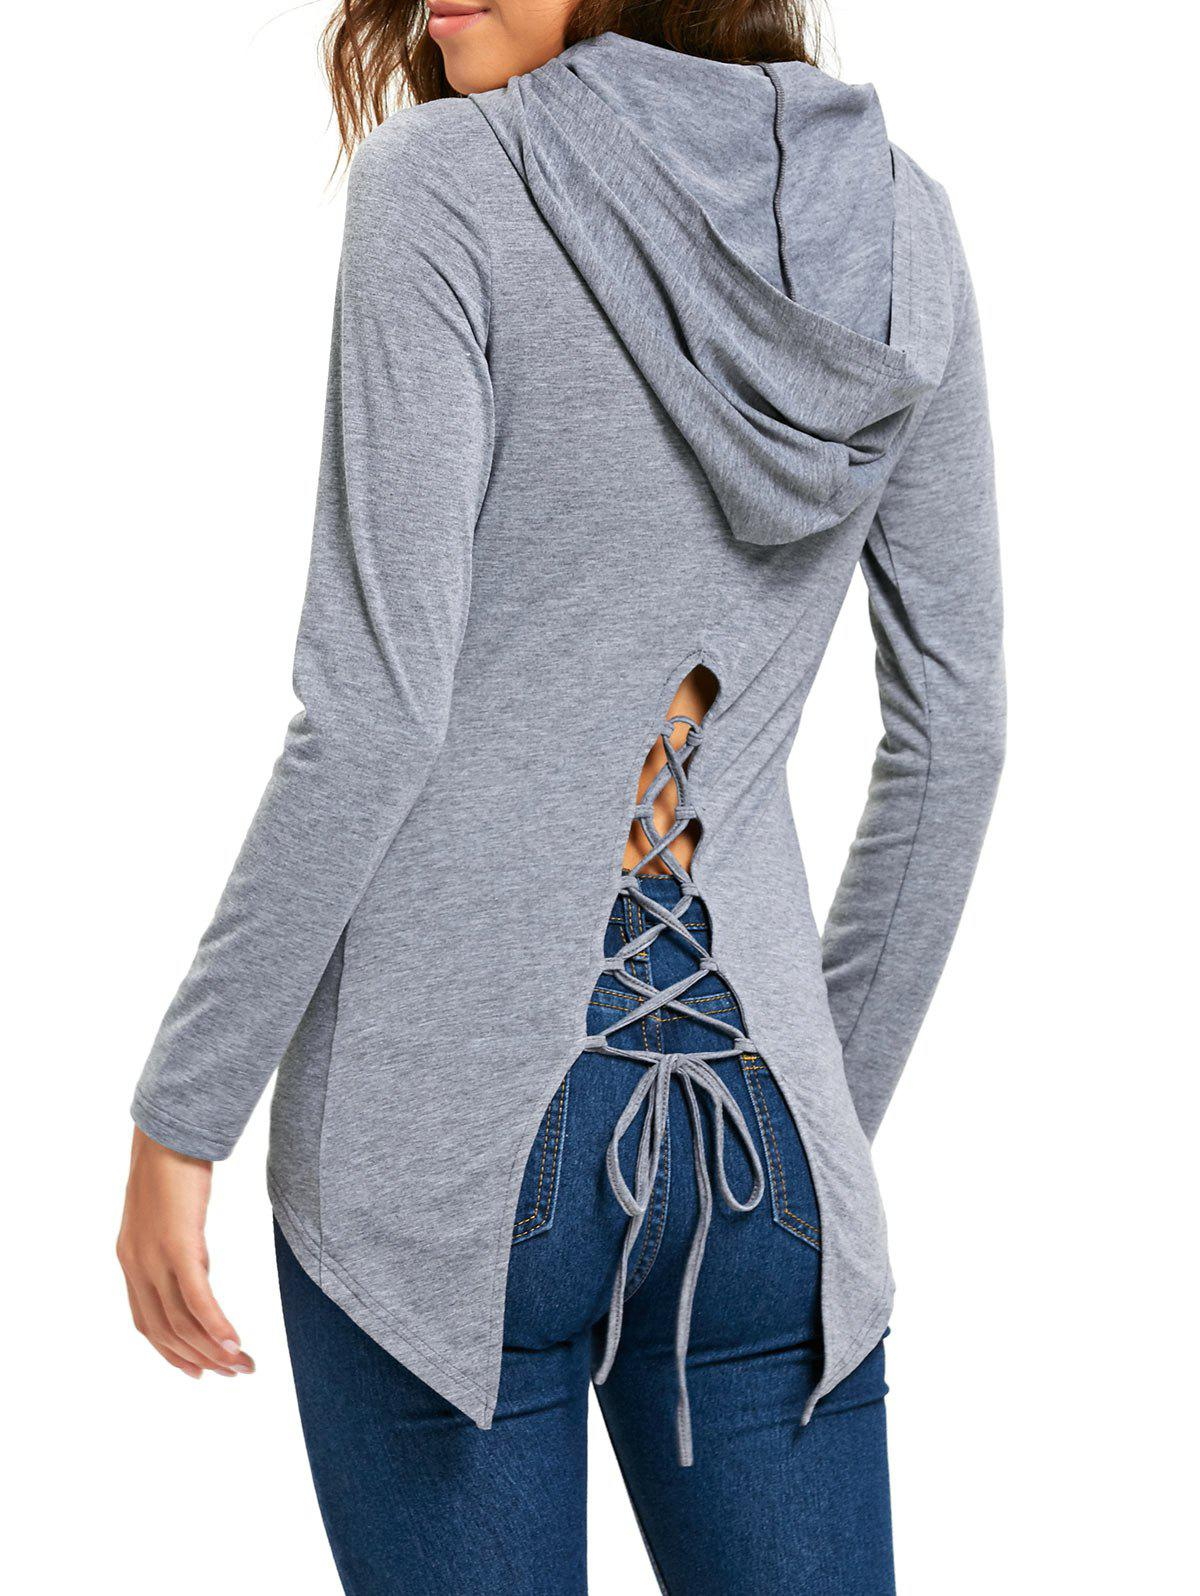 New High Low Lace Up Hooded Tunic T-shirt